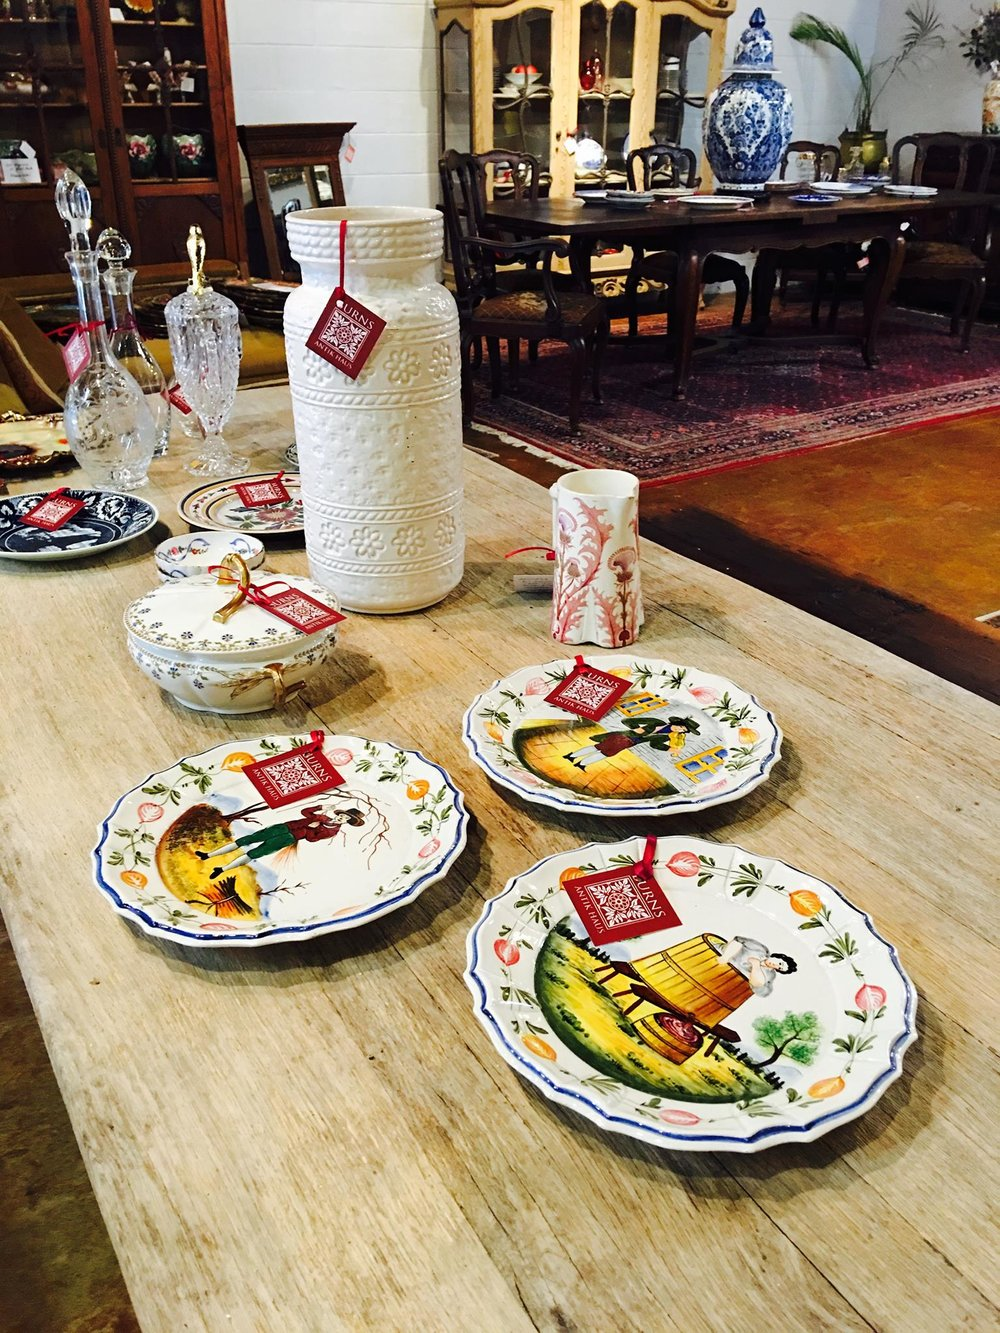 New arrivals just out! Gorgeous French decanters and new pottery pieces. And it's never to early to start shopping for that special Valentine in your life!!! 2195 Calder Ave, Beaumont Tx, 77701, 409.835.3080.  #burnsantikhaus   #vintage   #europeanimporters   #shopsmall